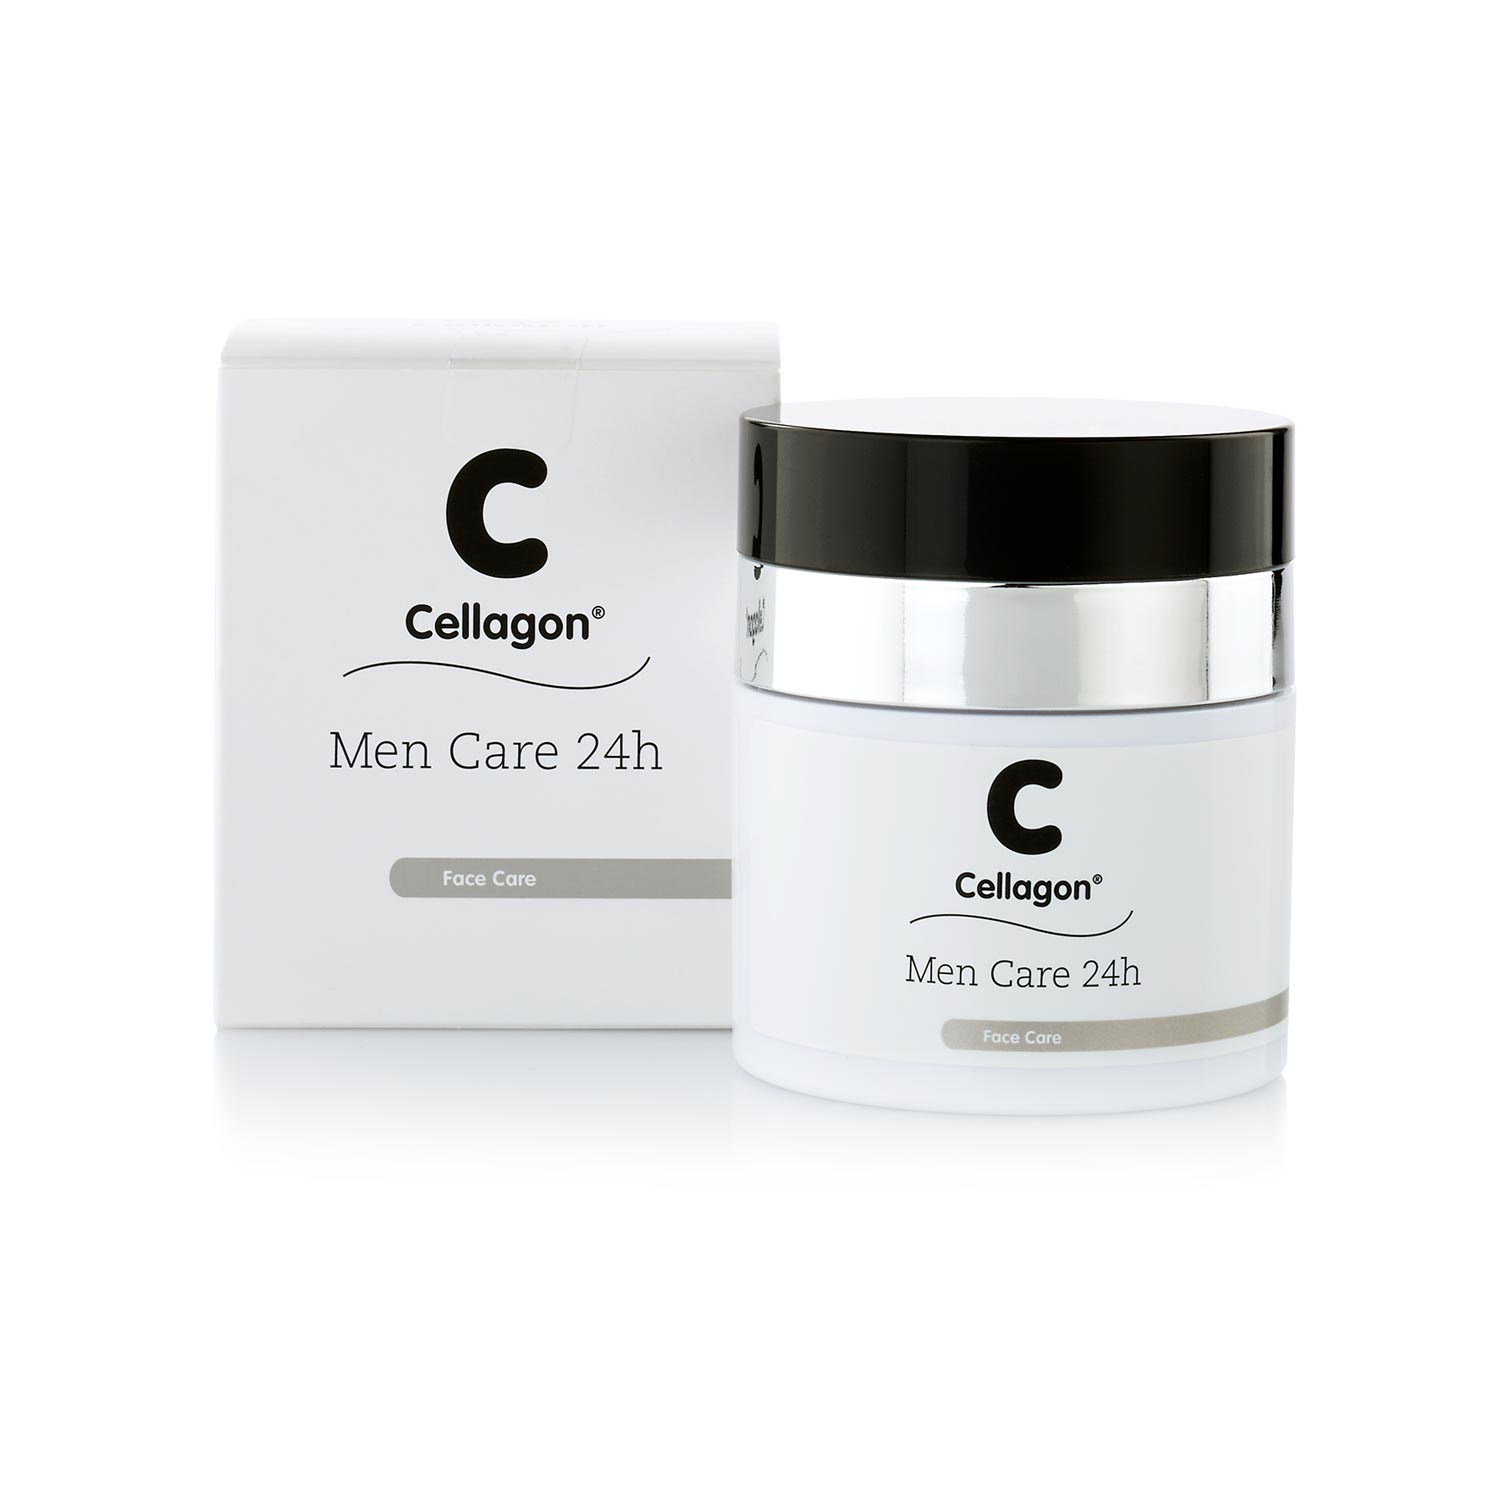 Cellagon Man care 24h Kosmetik Berater Florian Hoffmann Heilpraktiker Lüneburger Heide